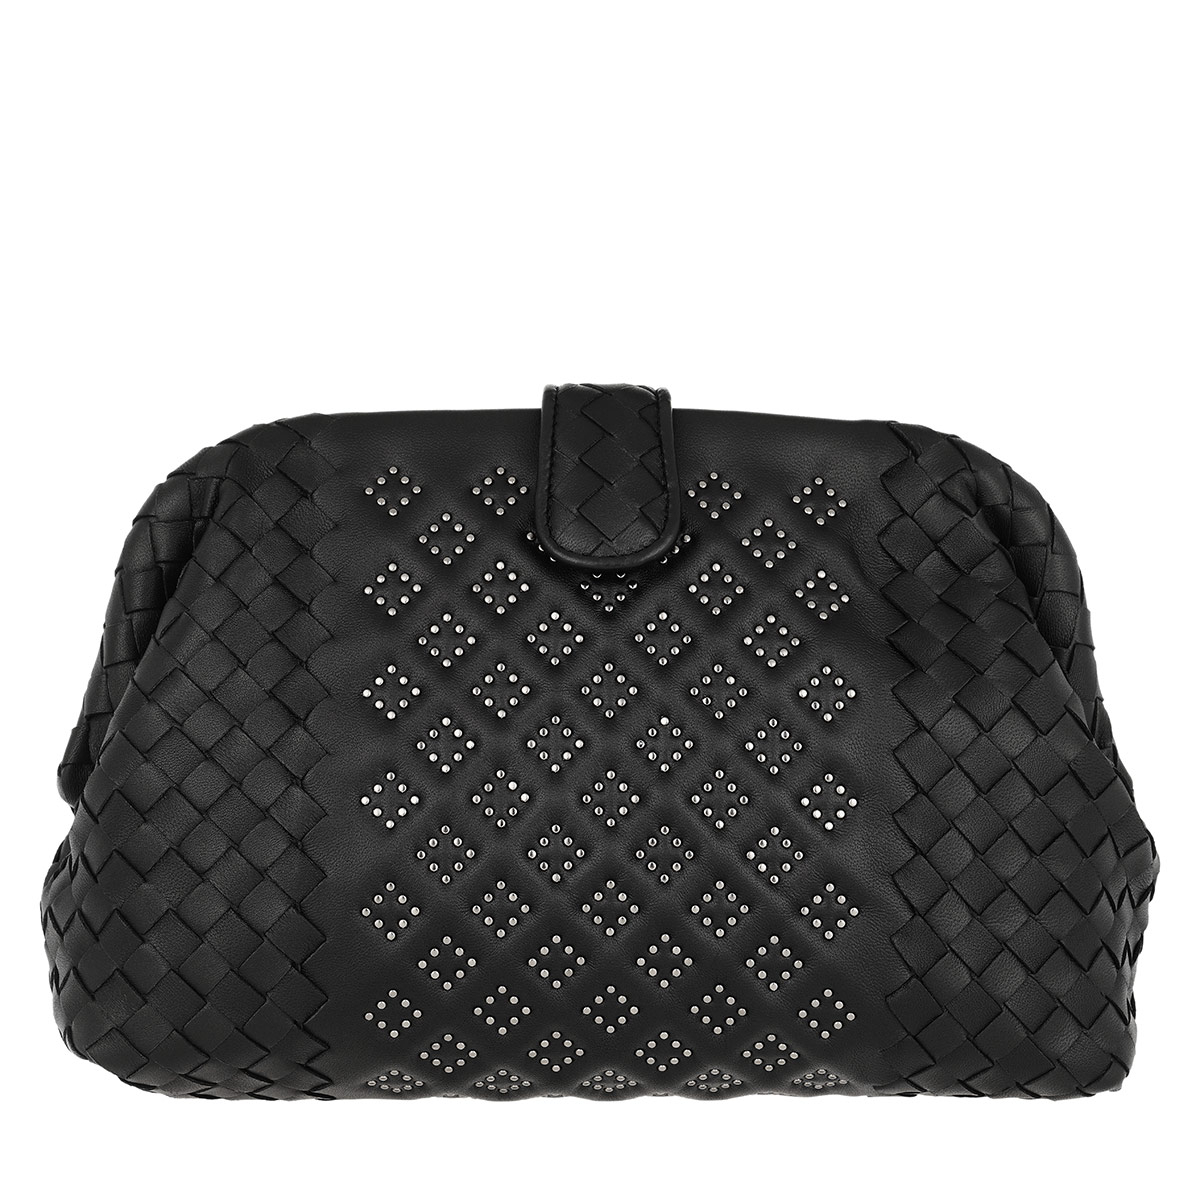 Bottega Veneta Clutch - The Lauren 1980 Micro Studs Nappa Leather Black - in schwarz - für Damen